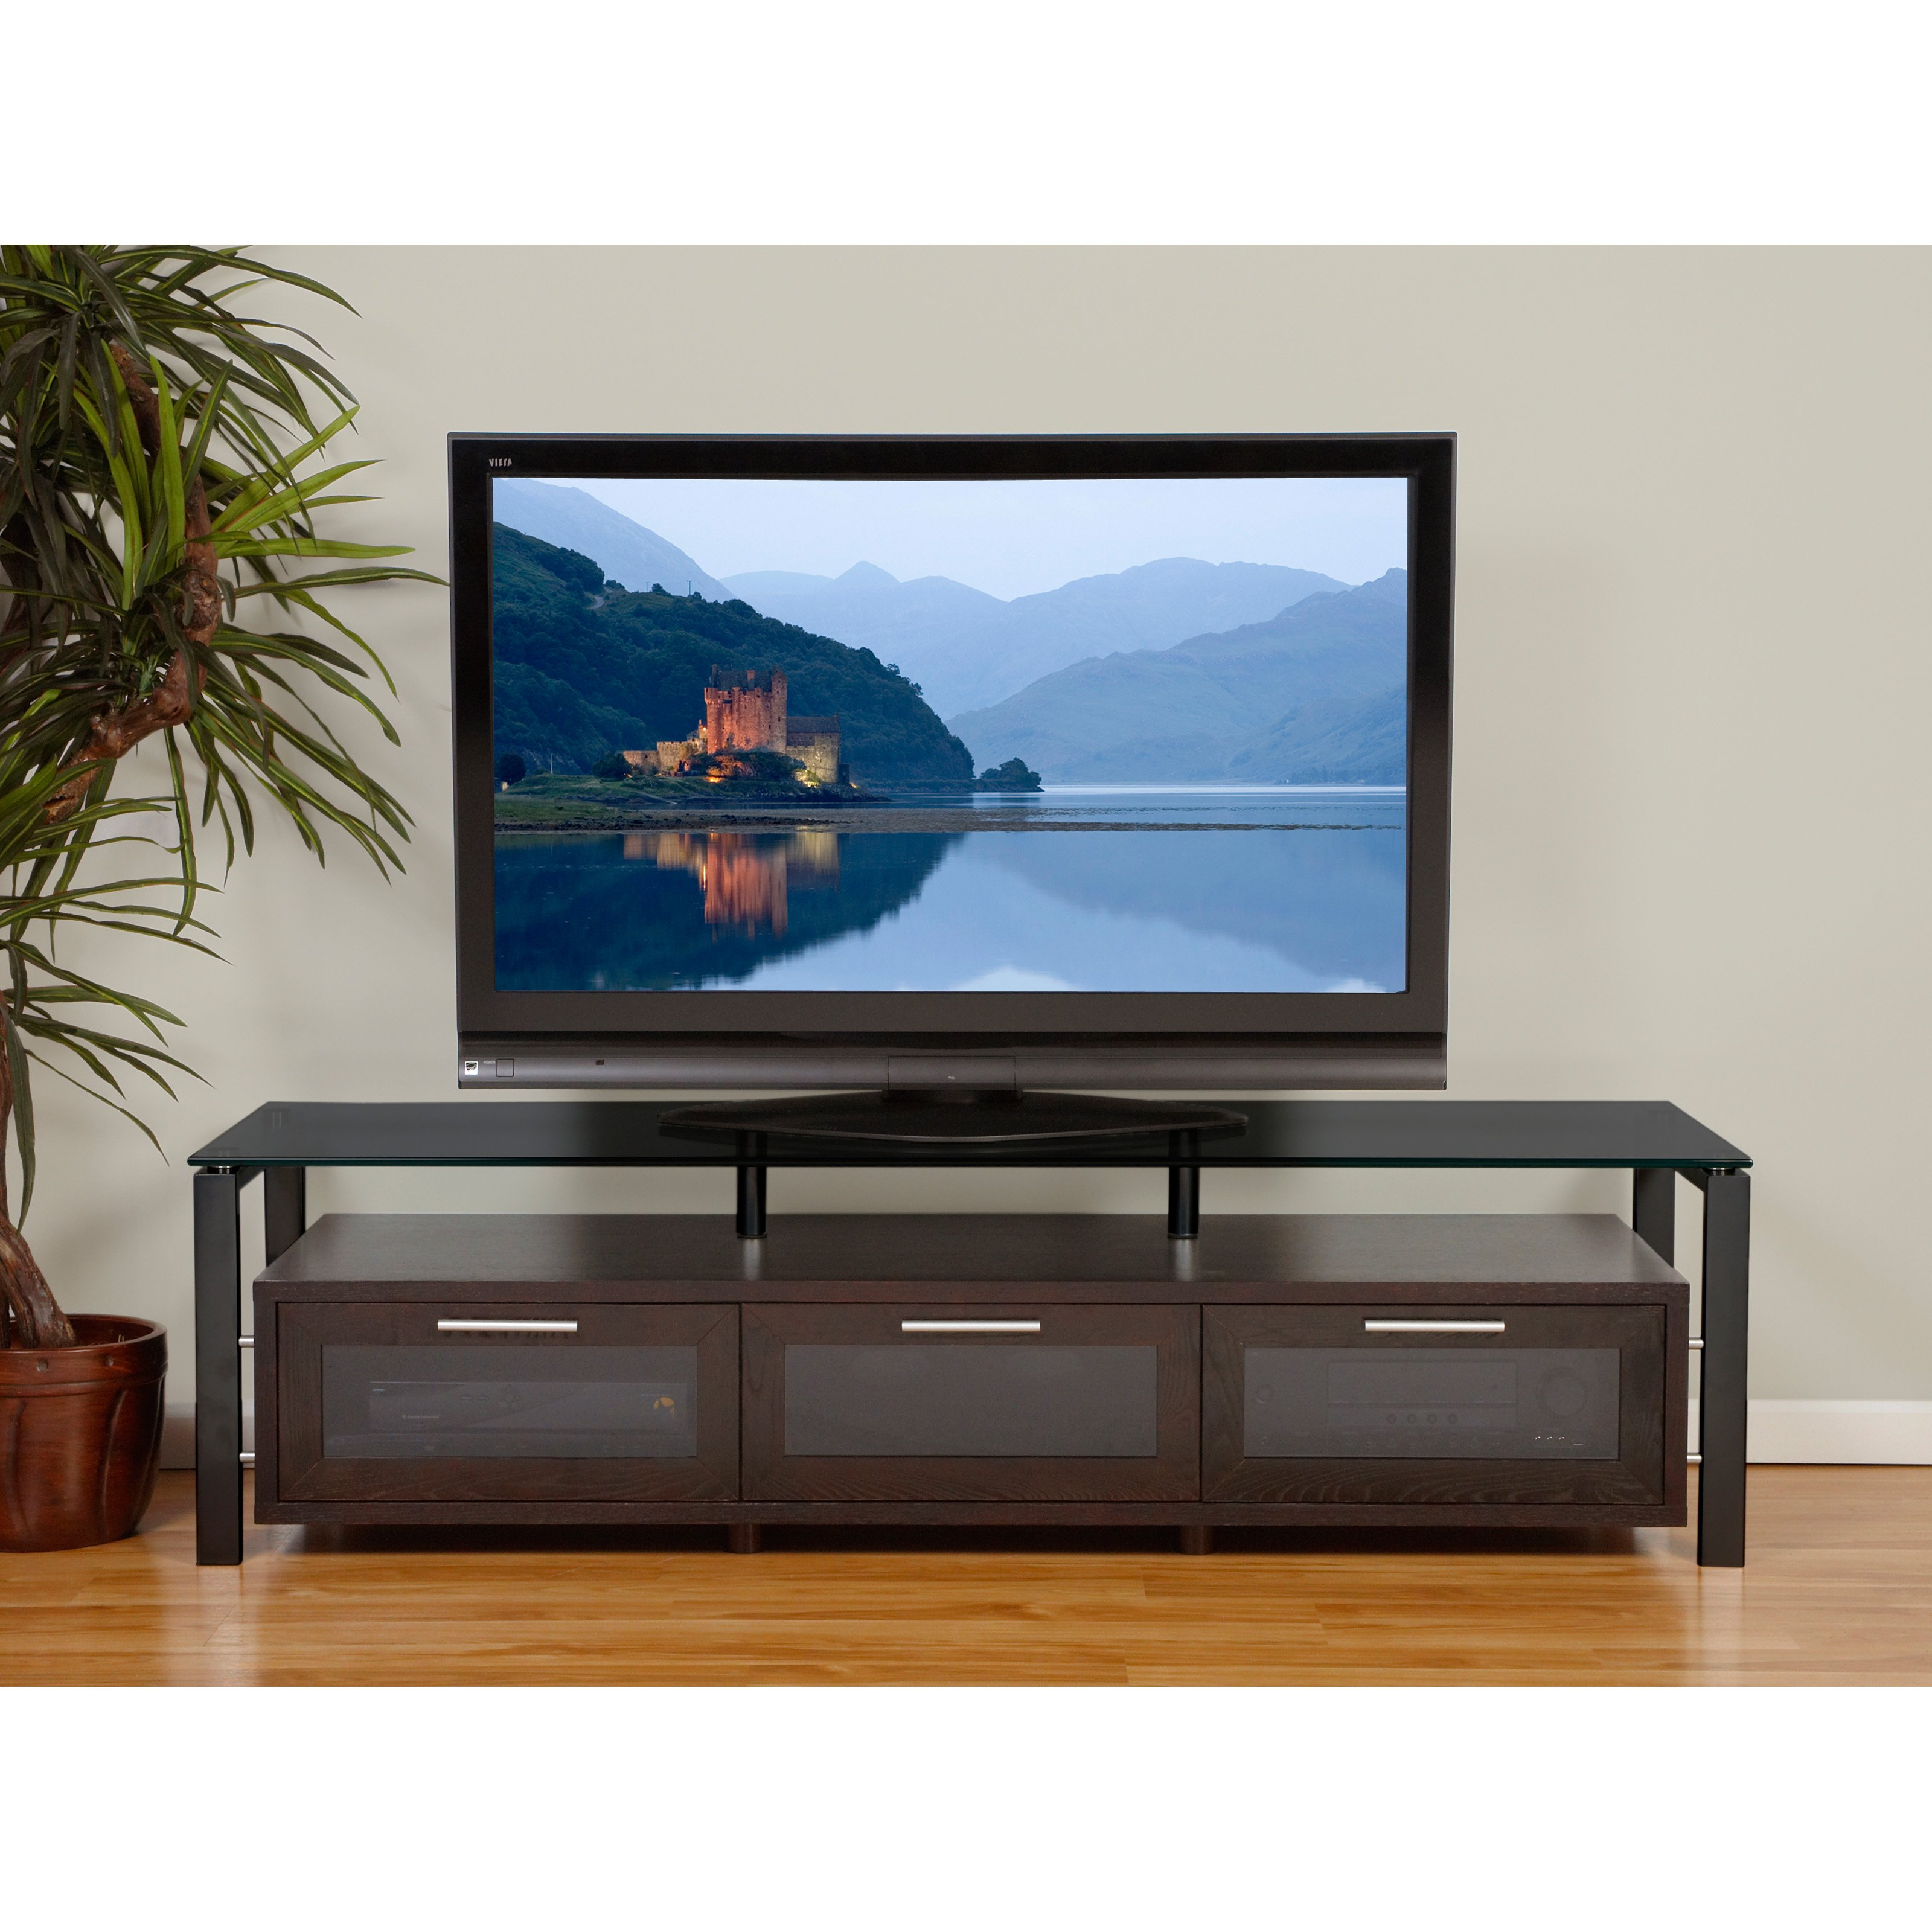 Plateau Decor 71 Inch TV Stand in Espresso/Black and Black